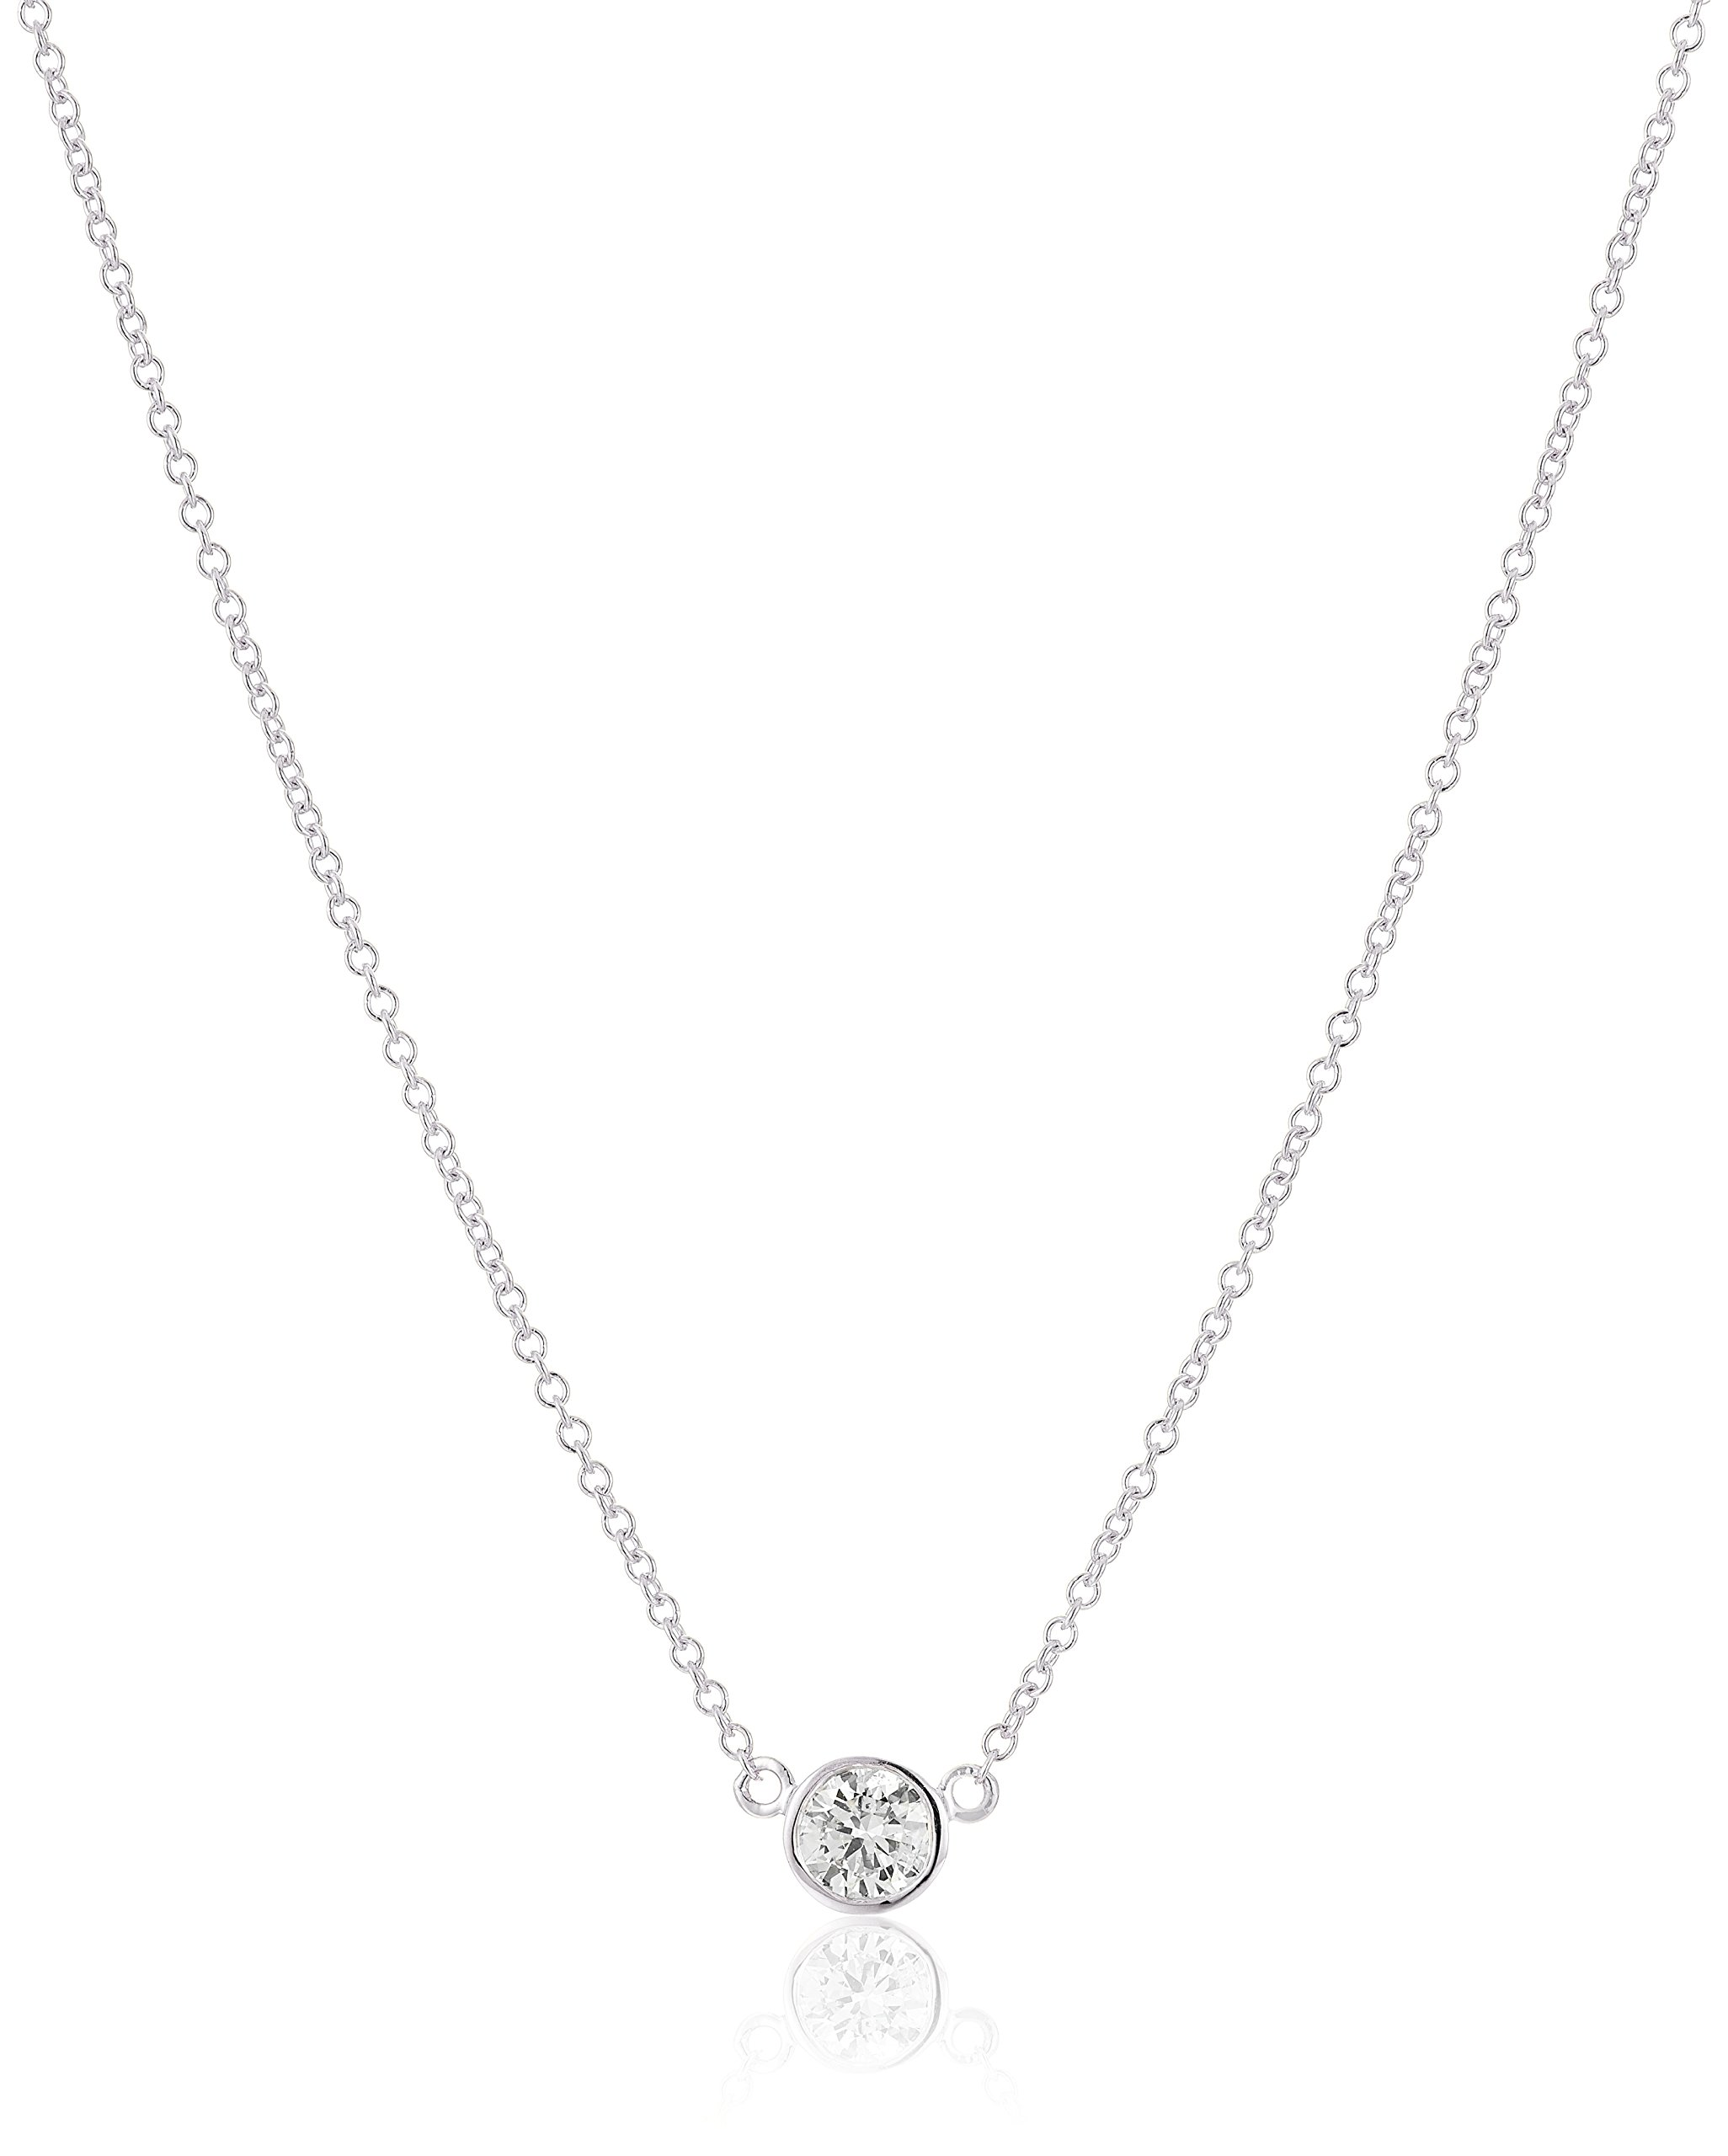 14k White Gold Bezel Set Solitaire Adjustable Pendant Necklace (1/4cttw, K-L Color, I2-I3 Clarity), 16'' + 2'' Extender